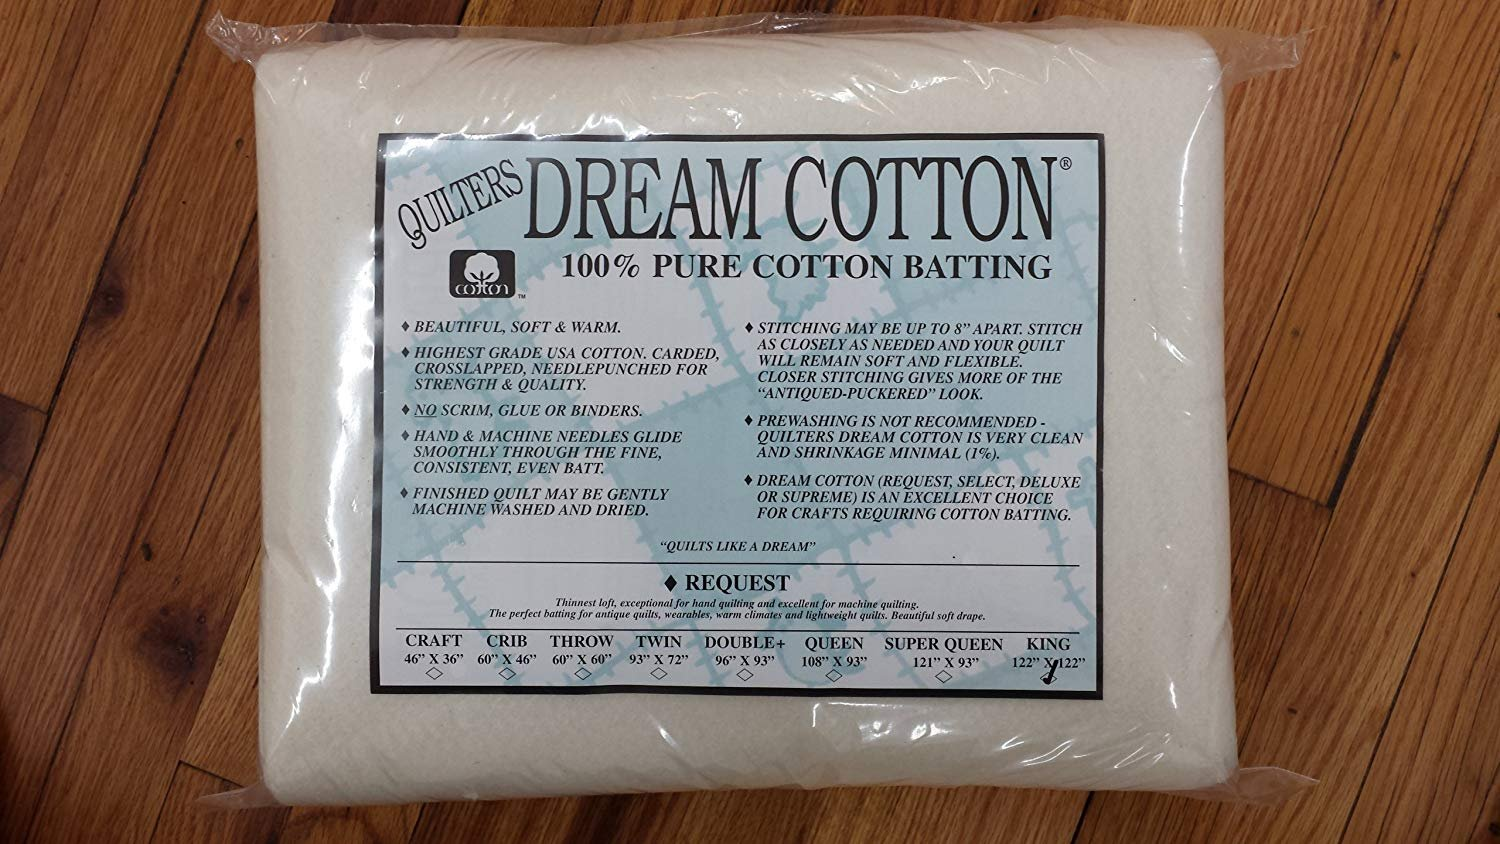 Request White King Cotton